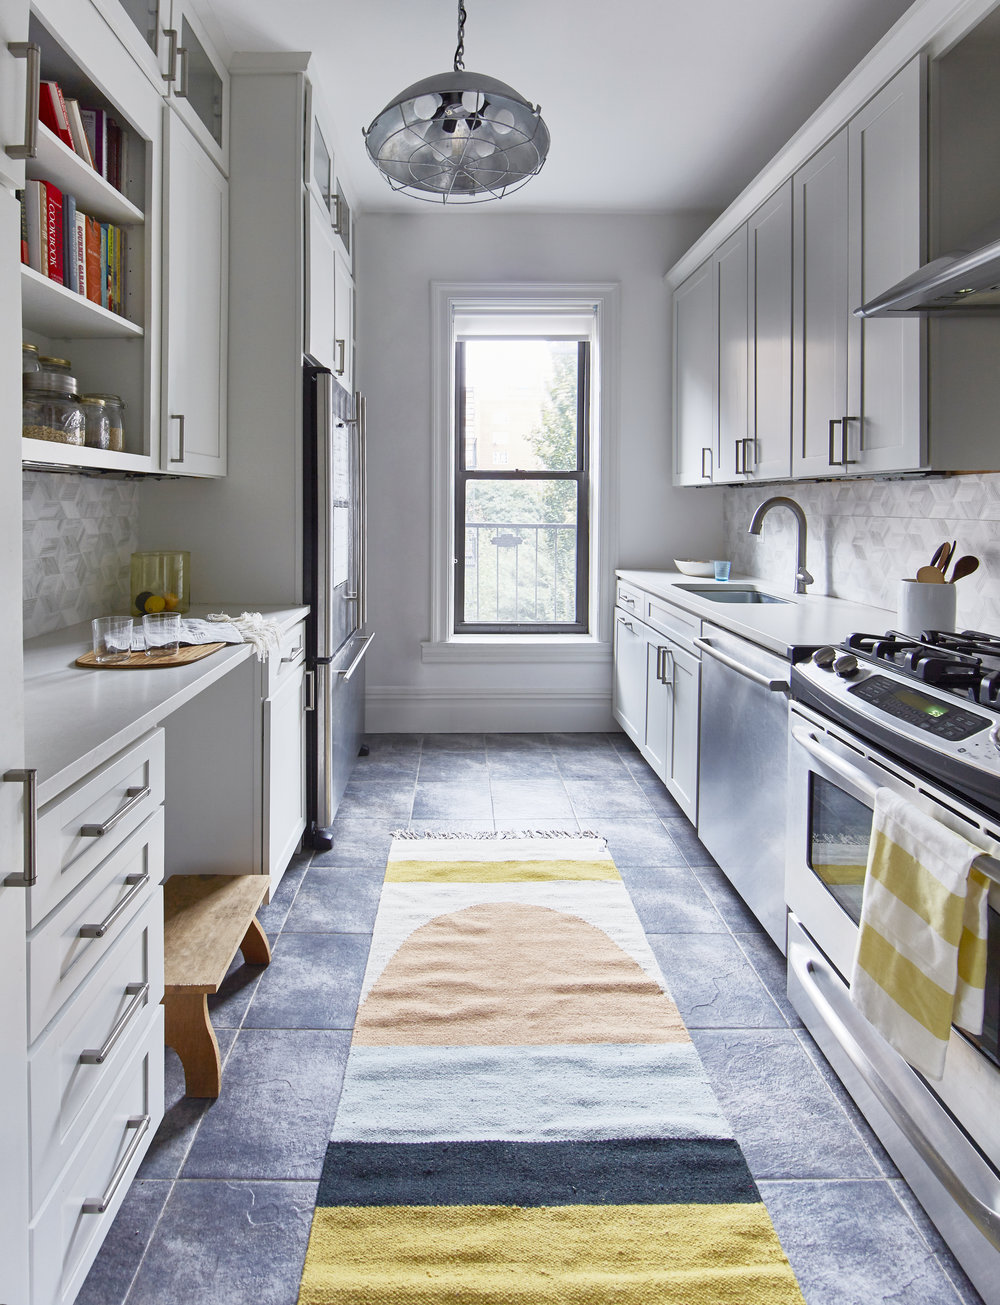 Cute Galley Kitchen Townhouse Park Slope Brooklyn JMorris Interior Design New York